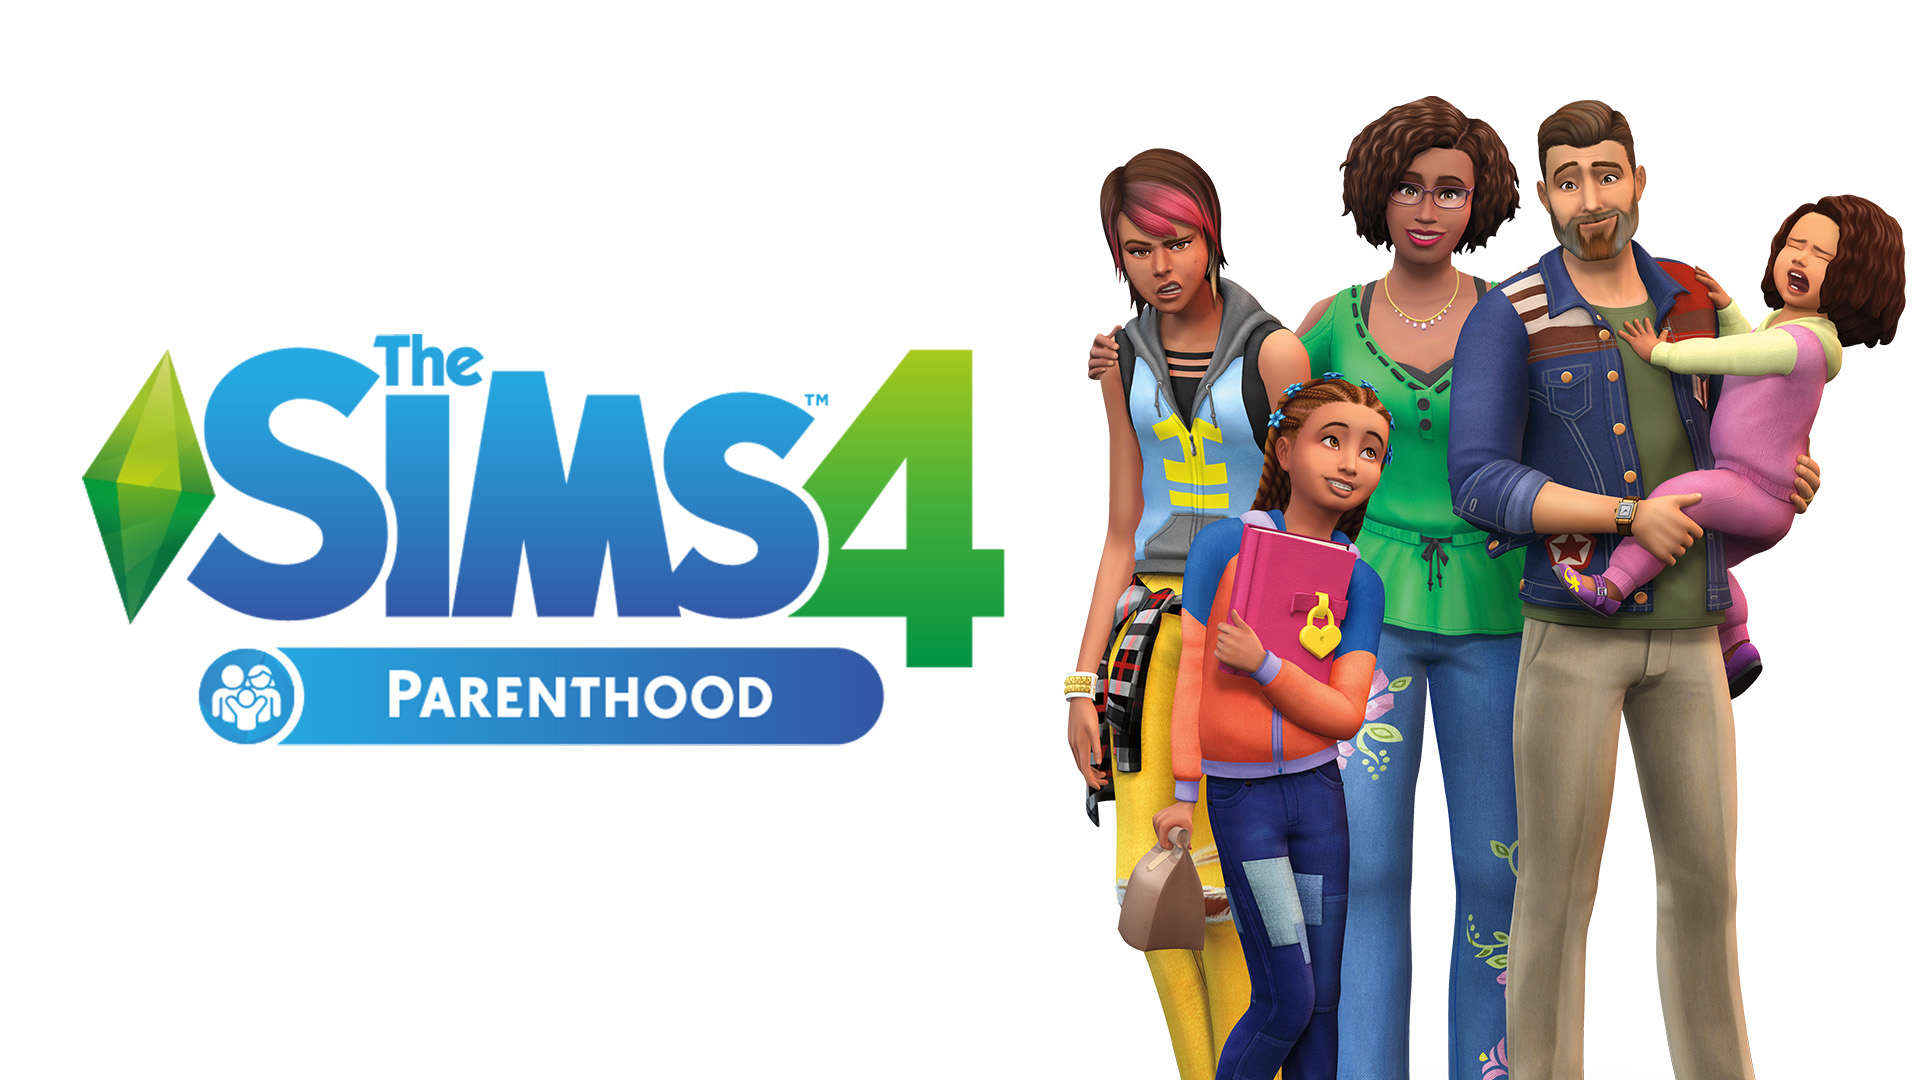 the sims 4 parenthood game pack announced beyond sims